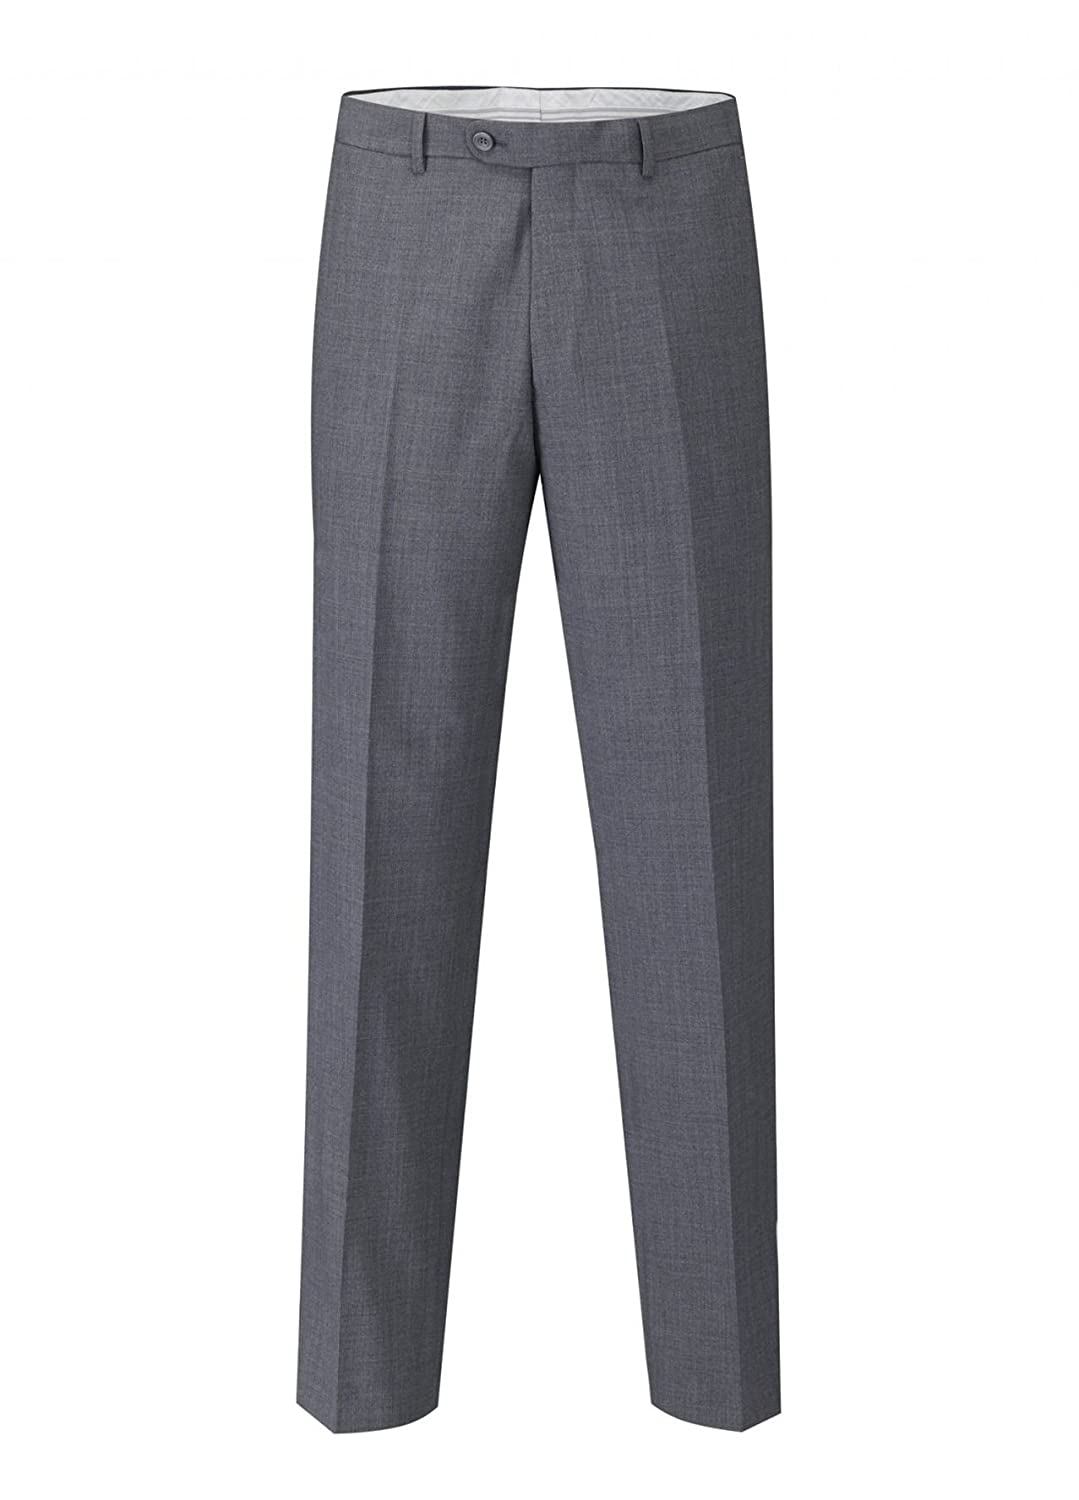 SKOPES WOOL RICH OTIS GREY SUIT TROUSER IN WAIST SIZE 30 TO 60